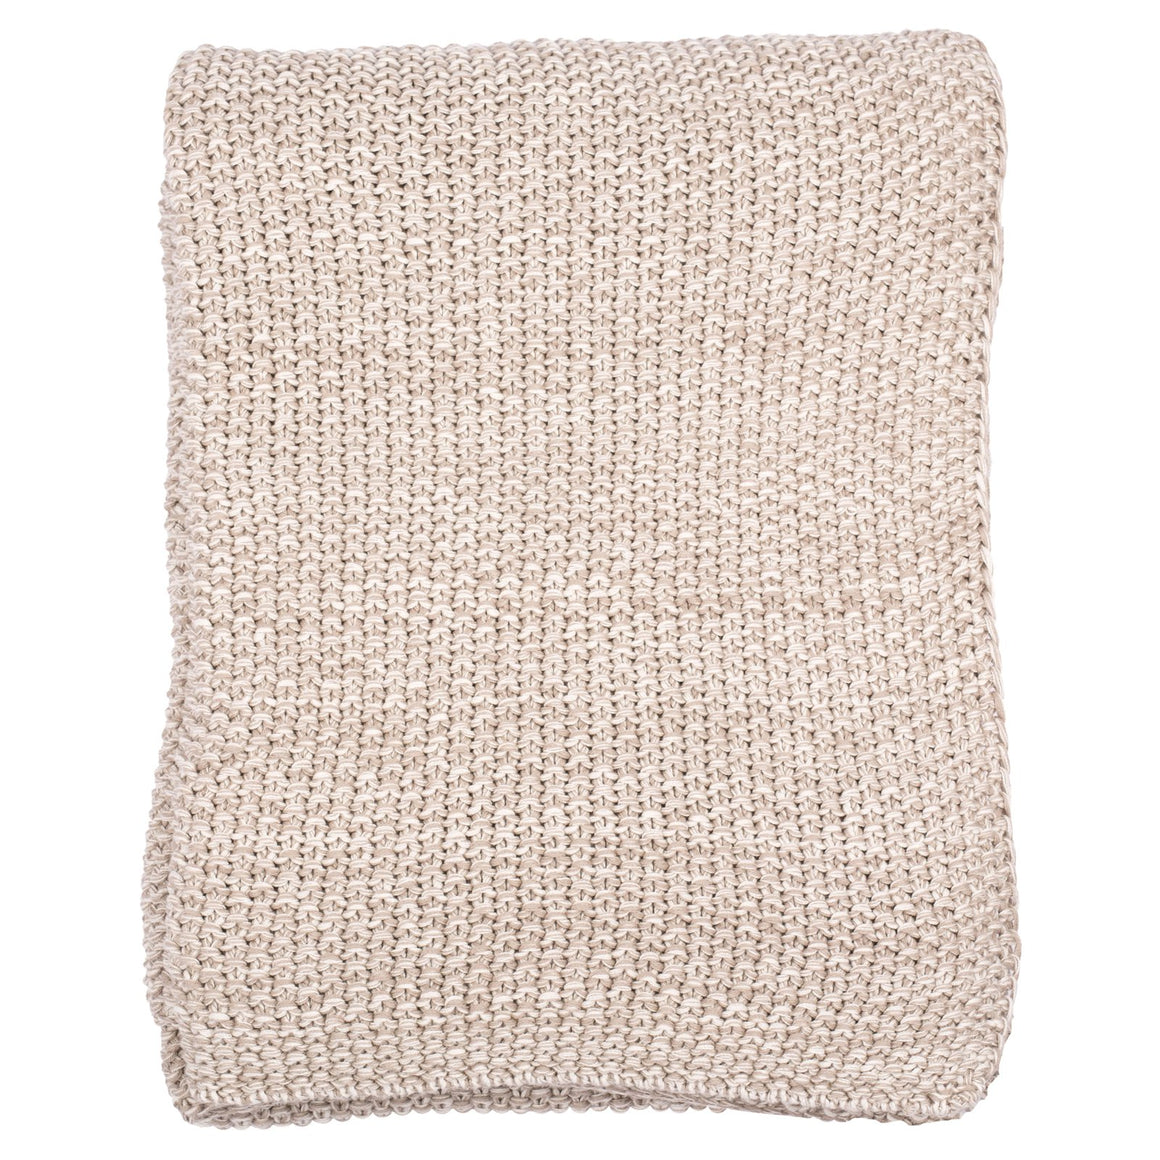 Motley Moss 100% Combed Cotton Throw - Stone/Natural